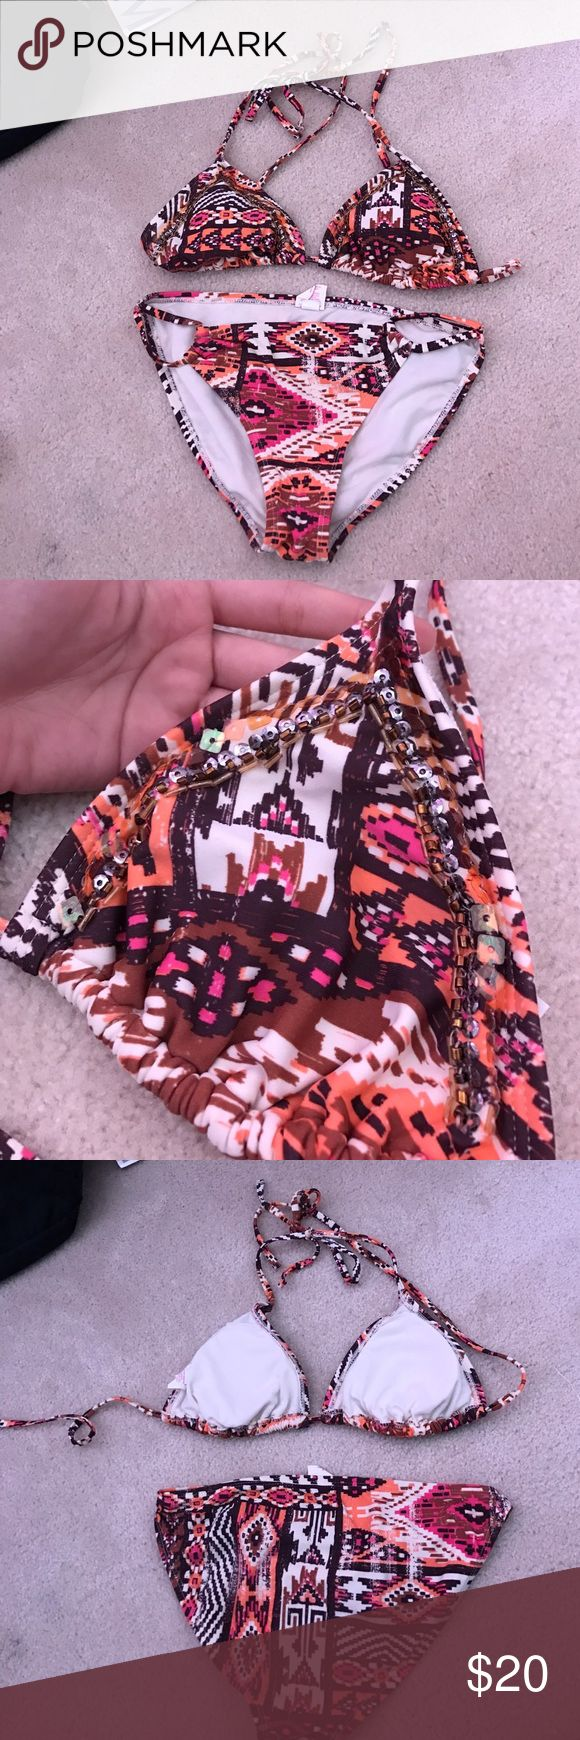 Embellished Aztec Bikini set Top is a size S, bottoms are a size M (fits like a S). Top has beaded embellishments and removable pads. Make an offer! Swim Bikinis